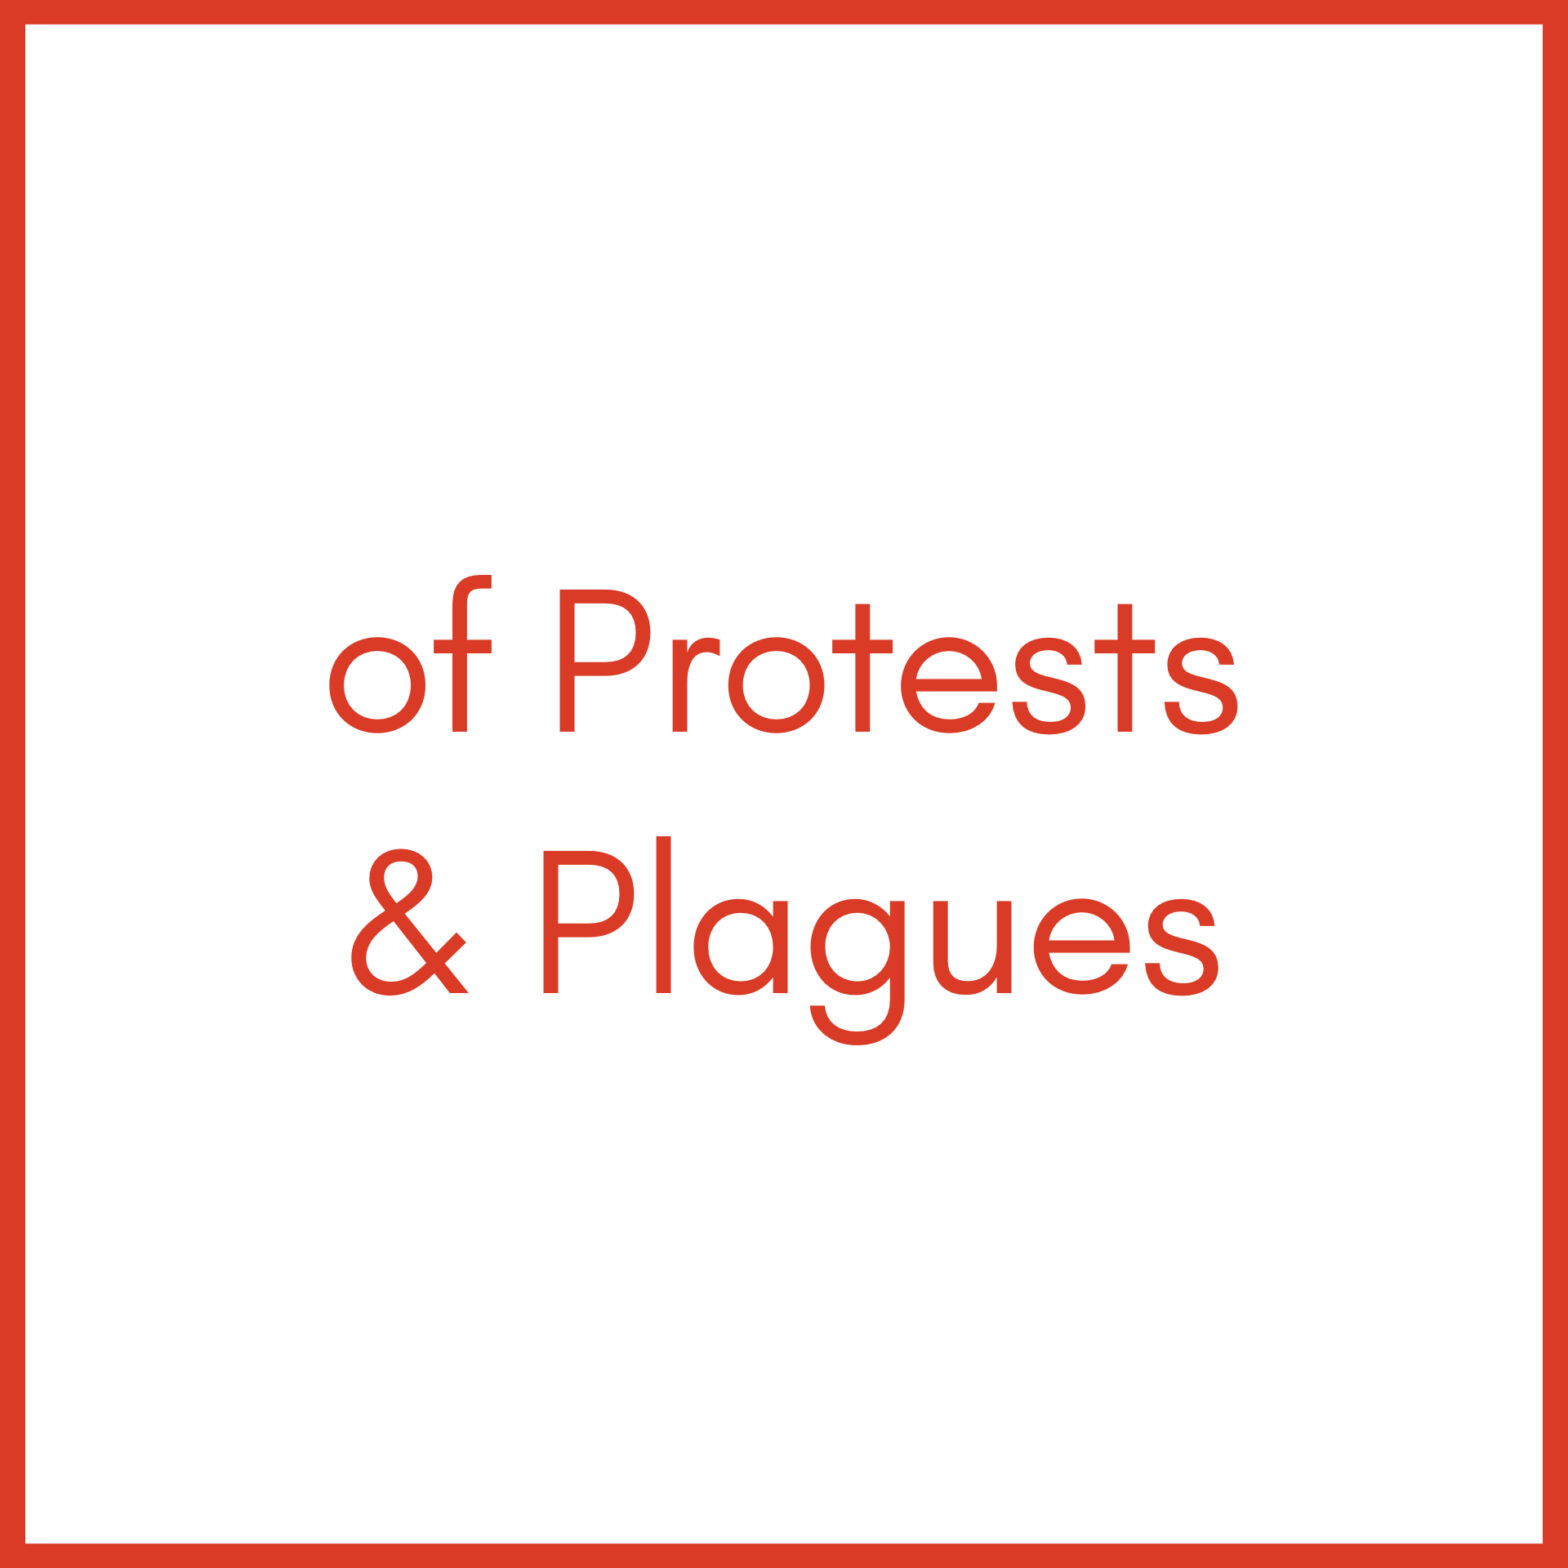 of Protest & Plagues Graphic